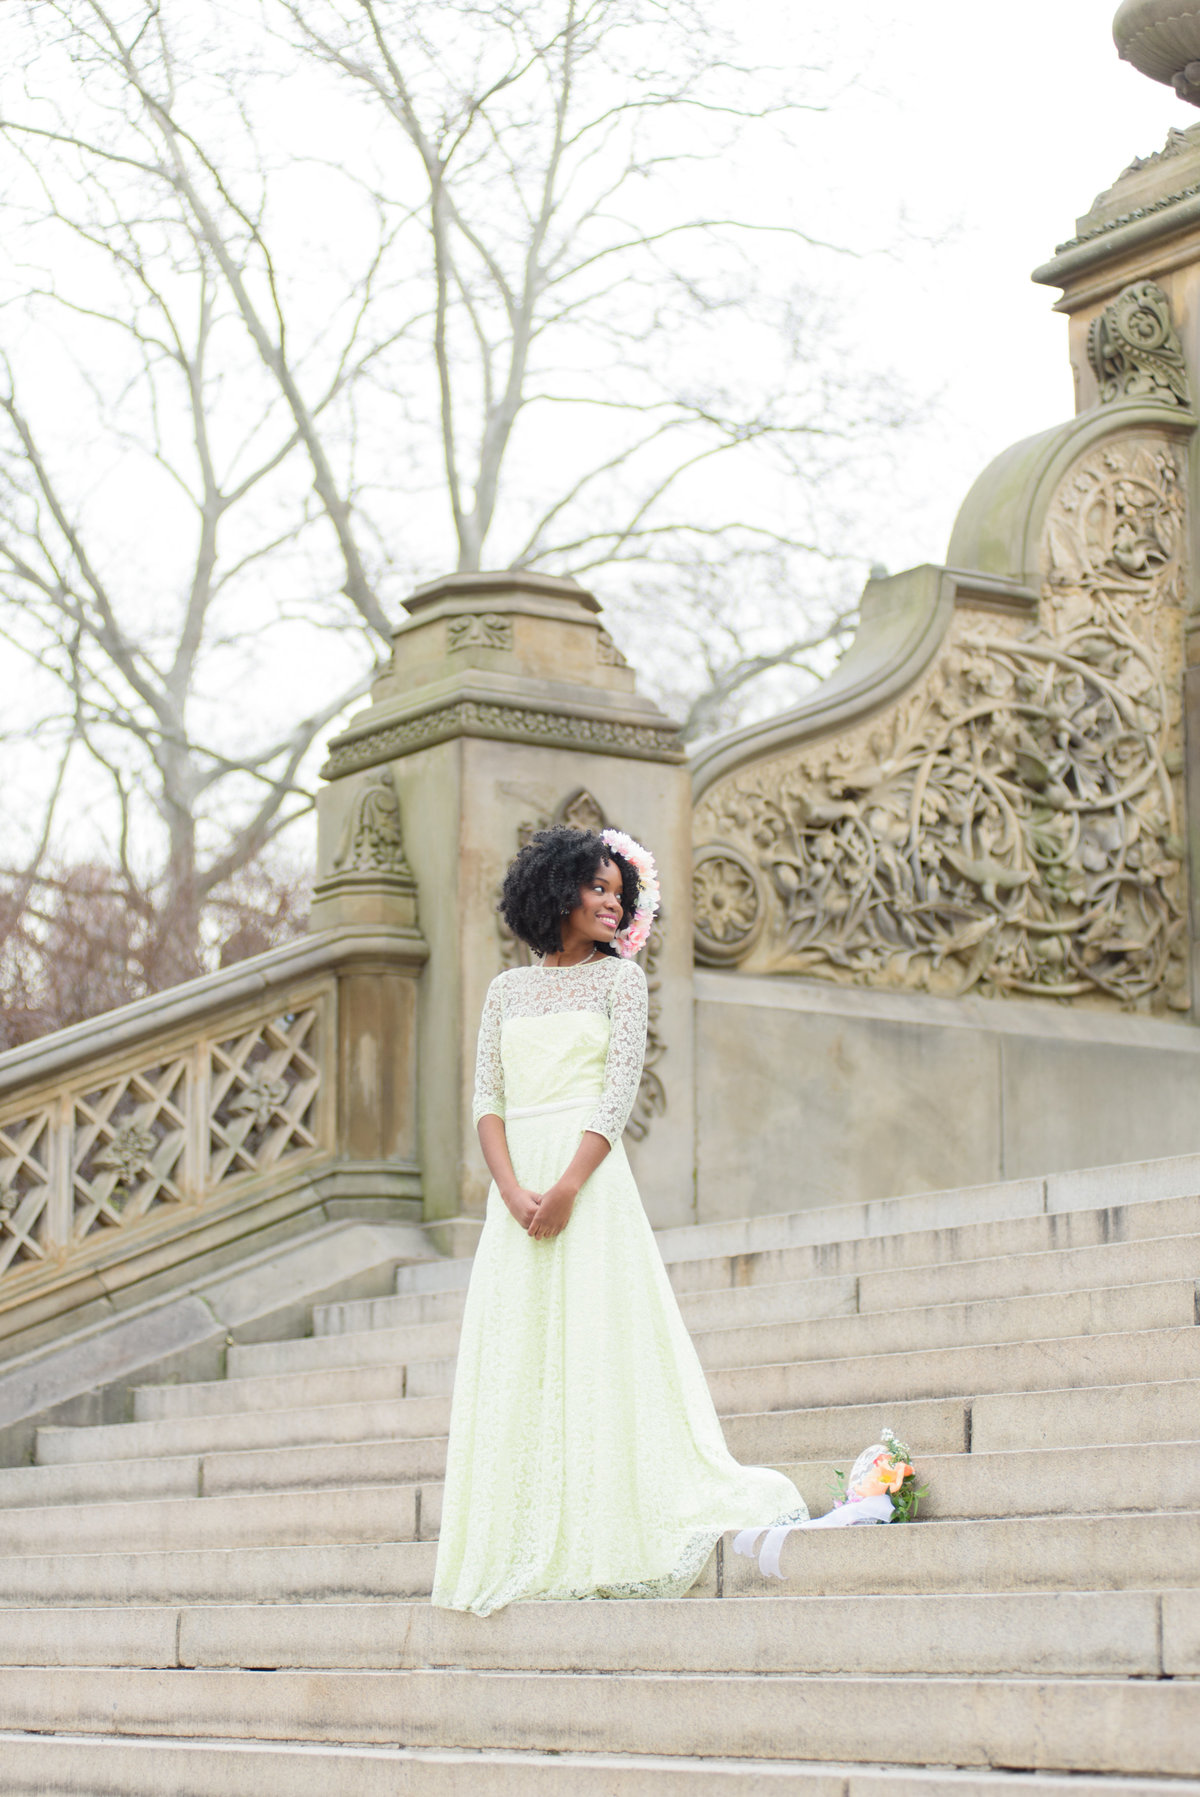 Central Park Wedding Photographer | Bridal Style Inspiration 16